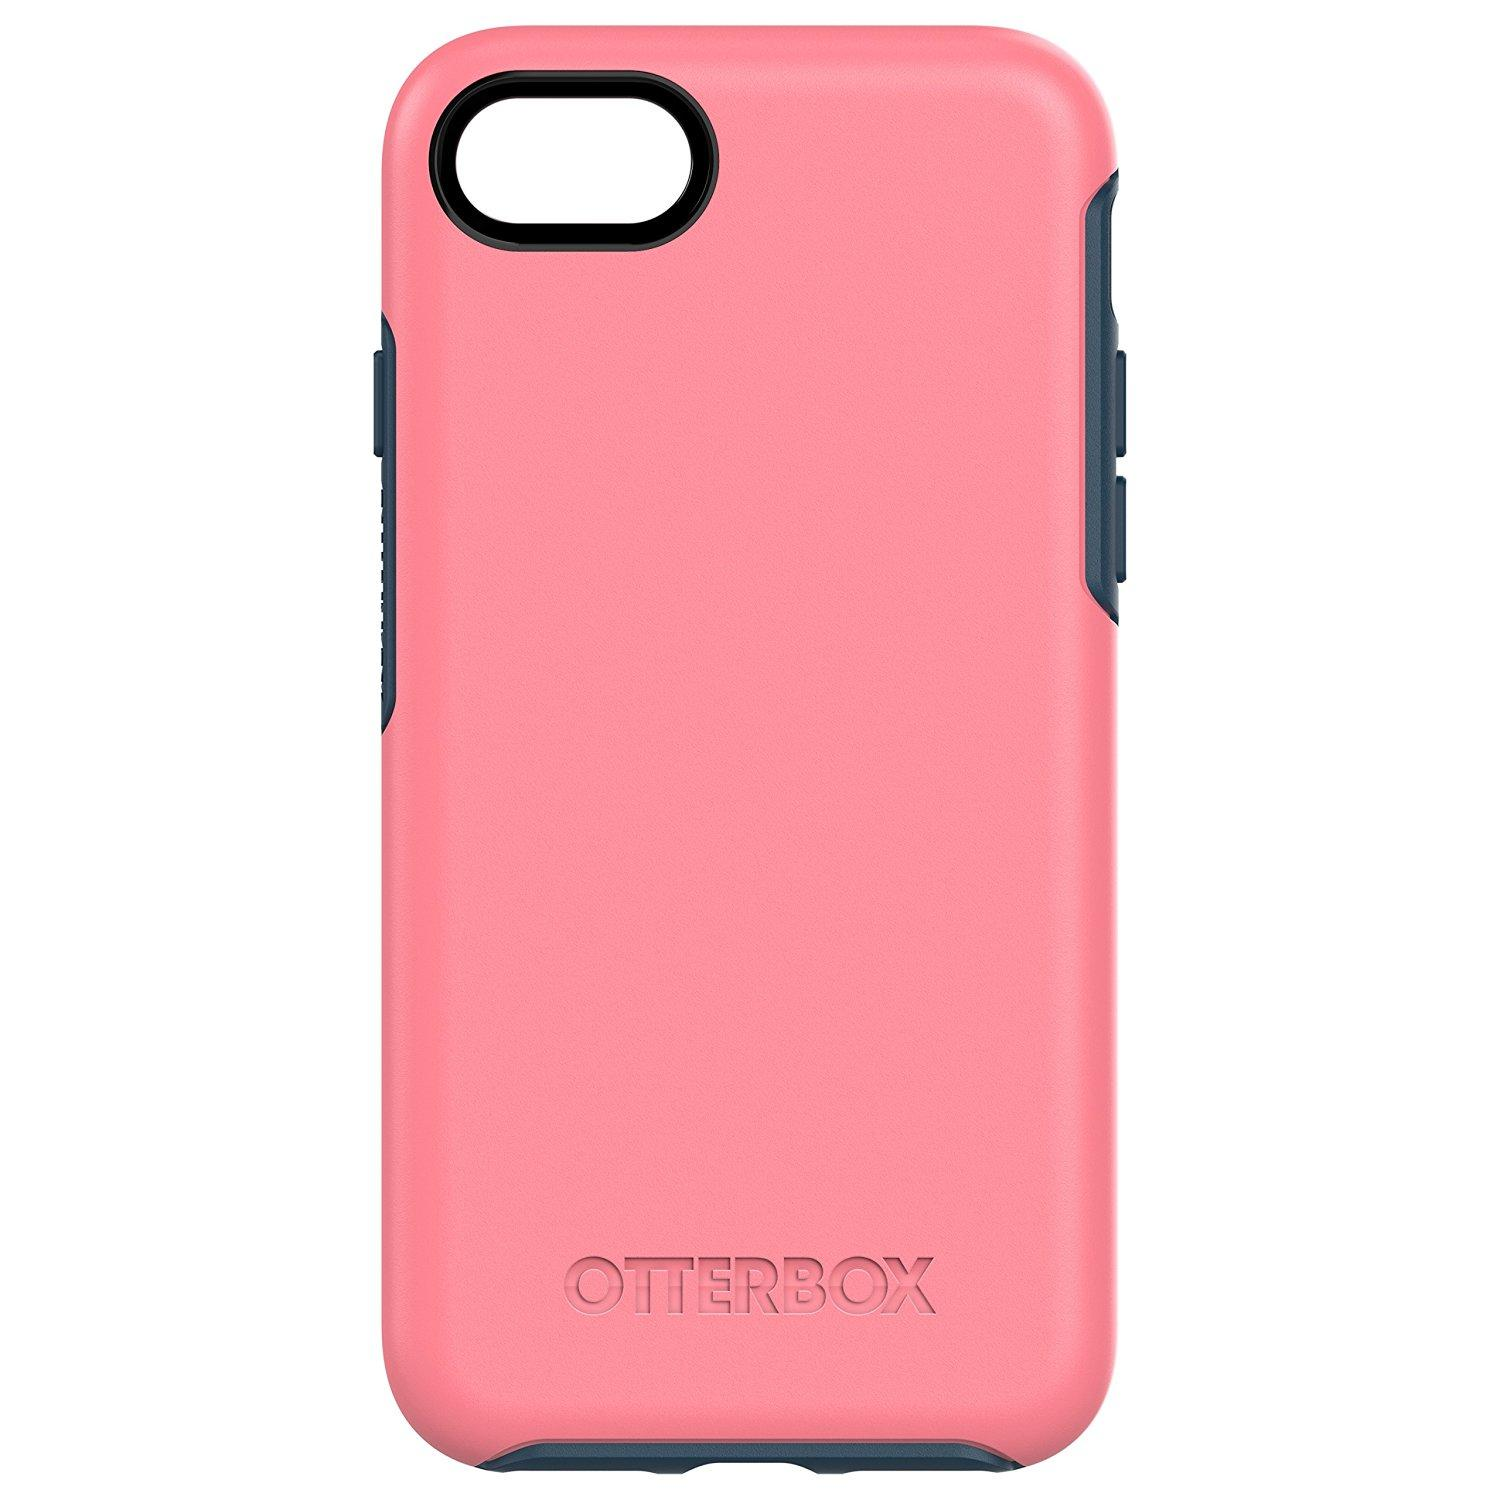 Get Cheap Otterbox Symmetry Sleek Drop Protection Case For Iphone 7 Iphone 8 Pink Blue